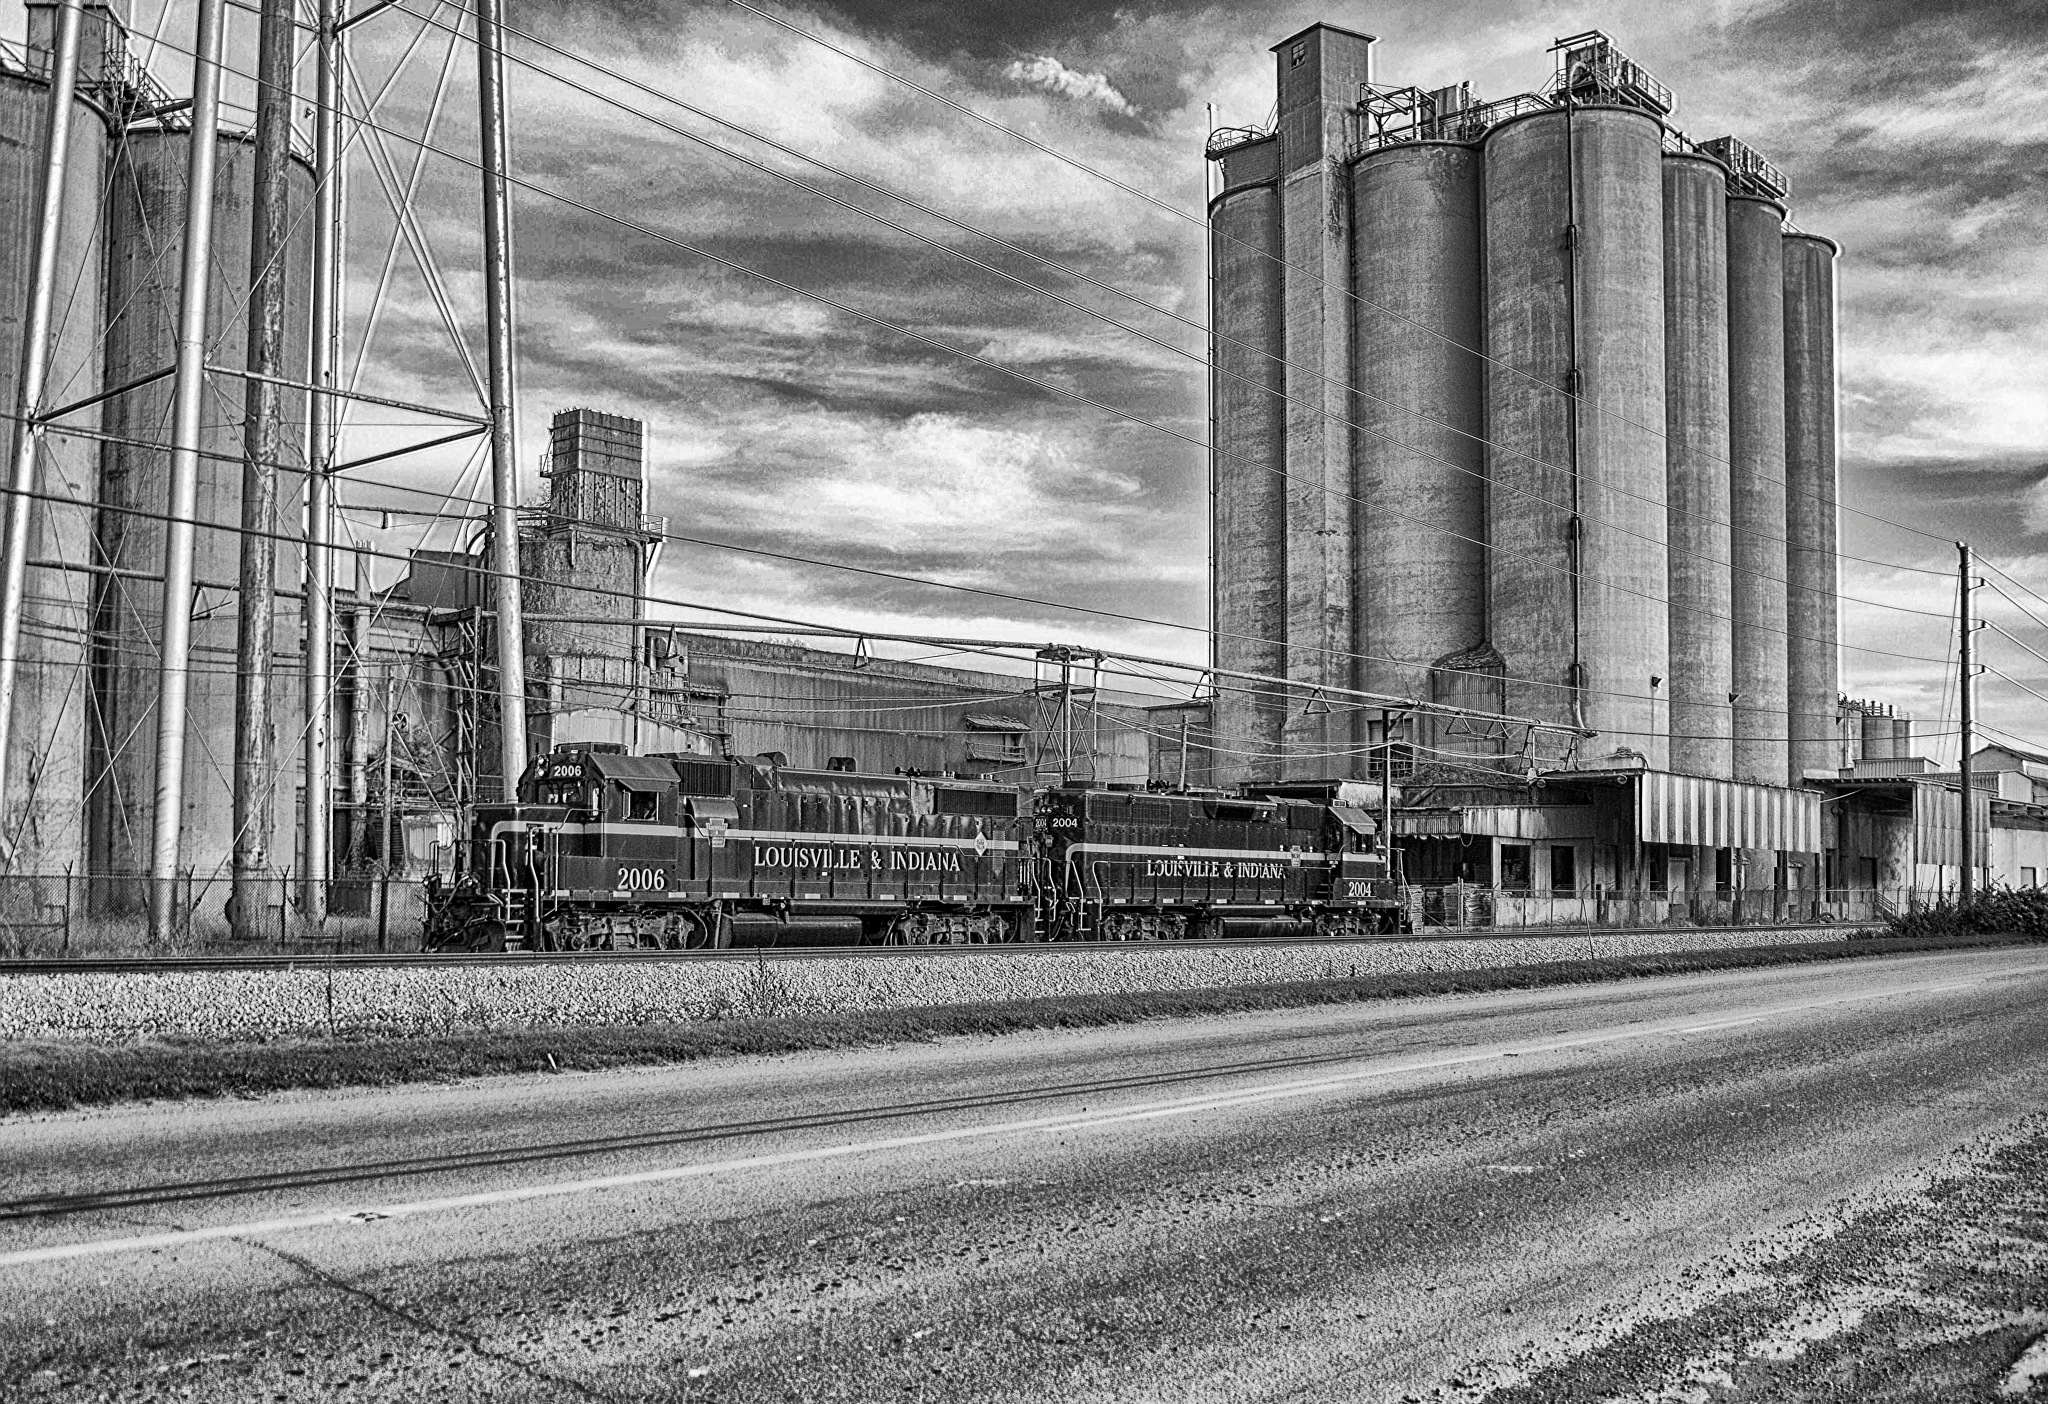 Louisville and Indiana Railway 2006 by Dean Francisco